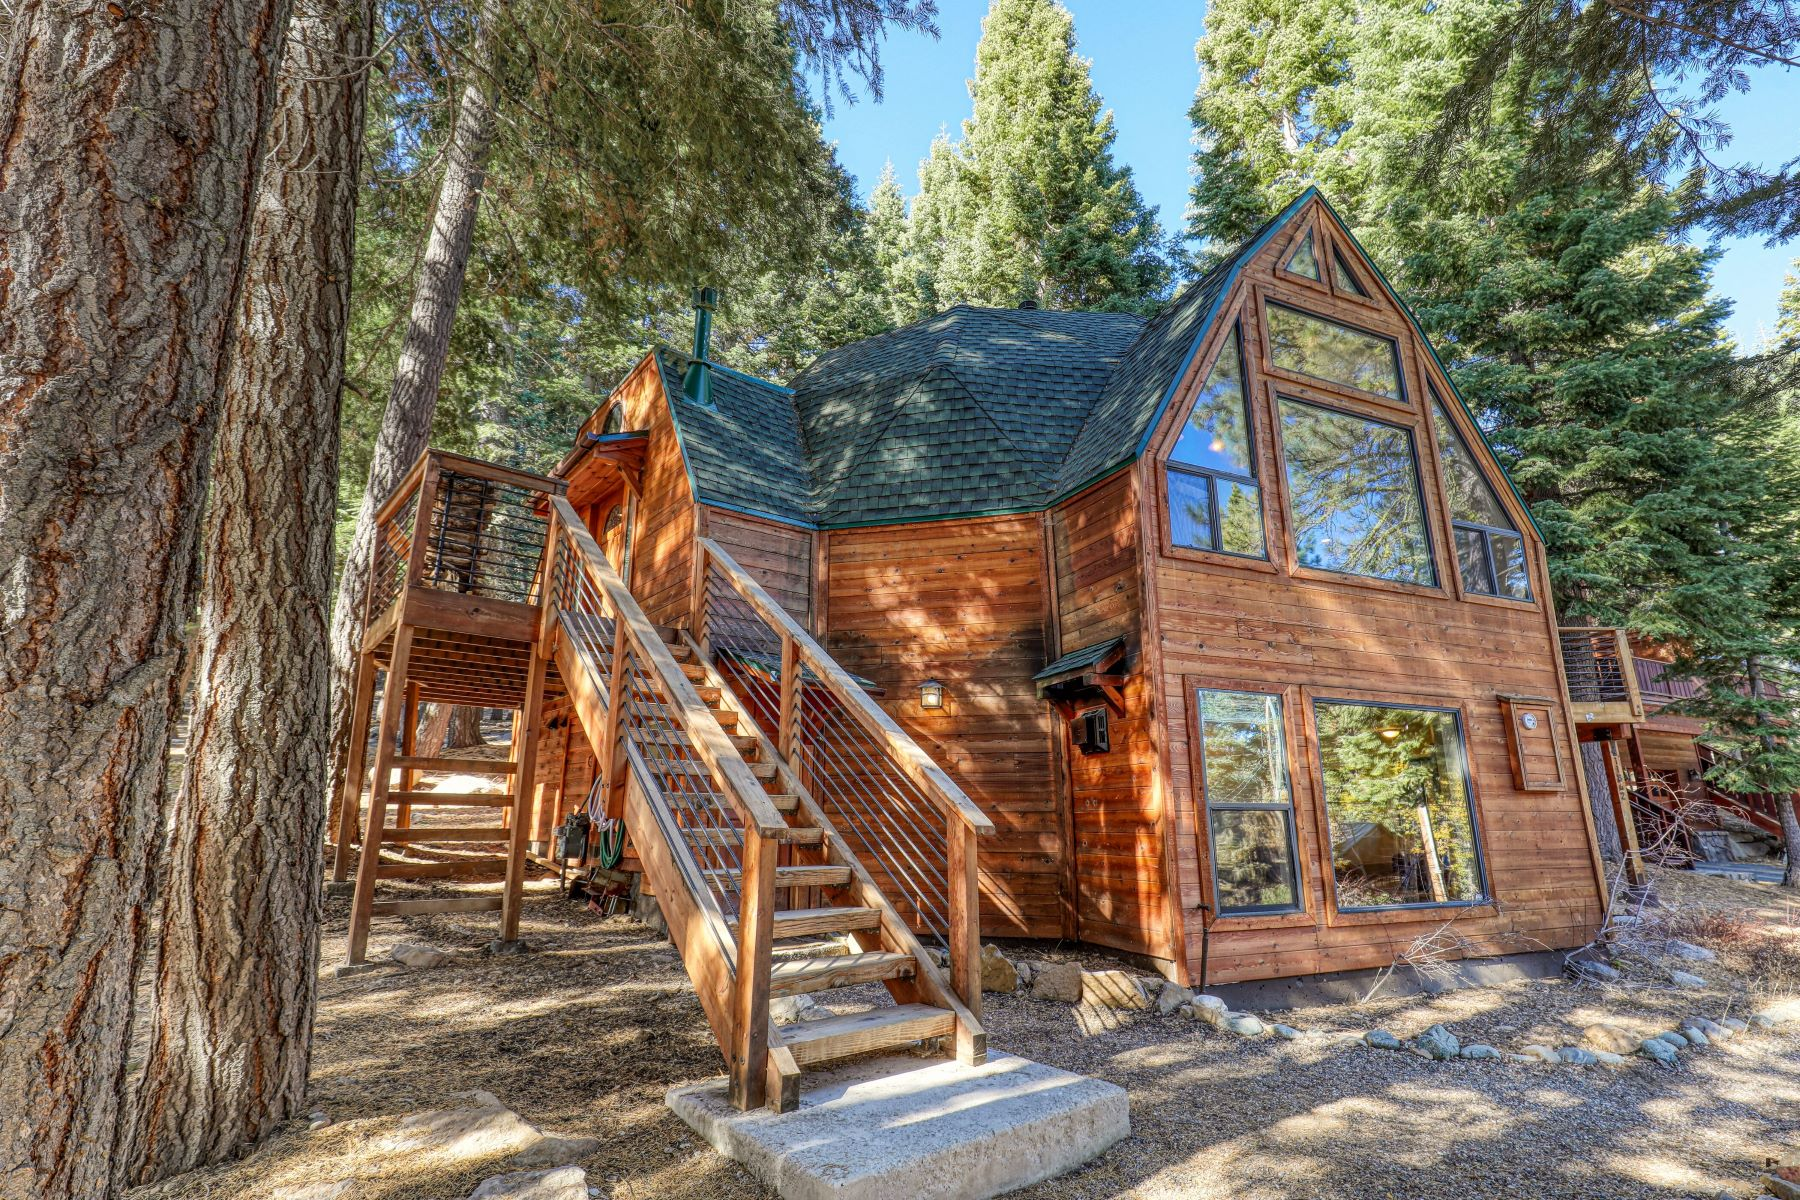 Single Family Homes for Active at 11842 Chamonix Road Truckee, California 96161 United States